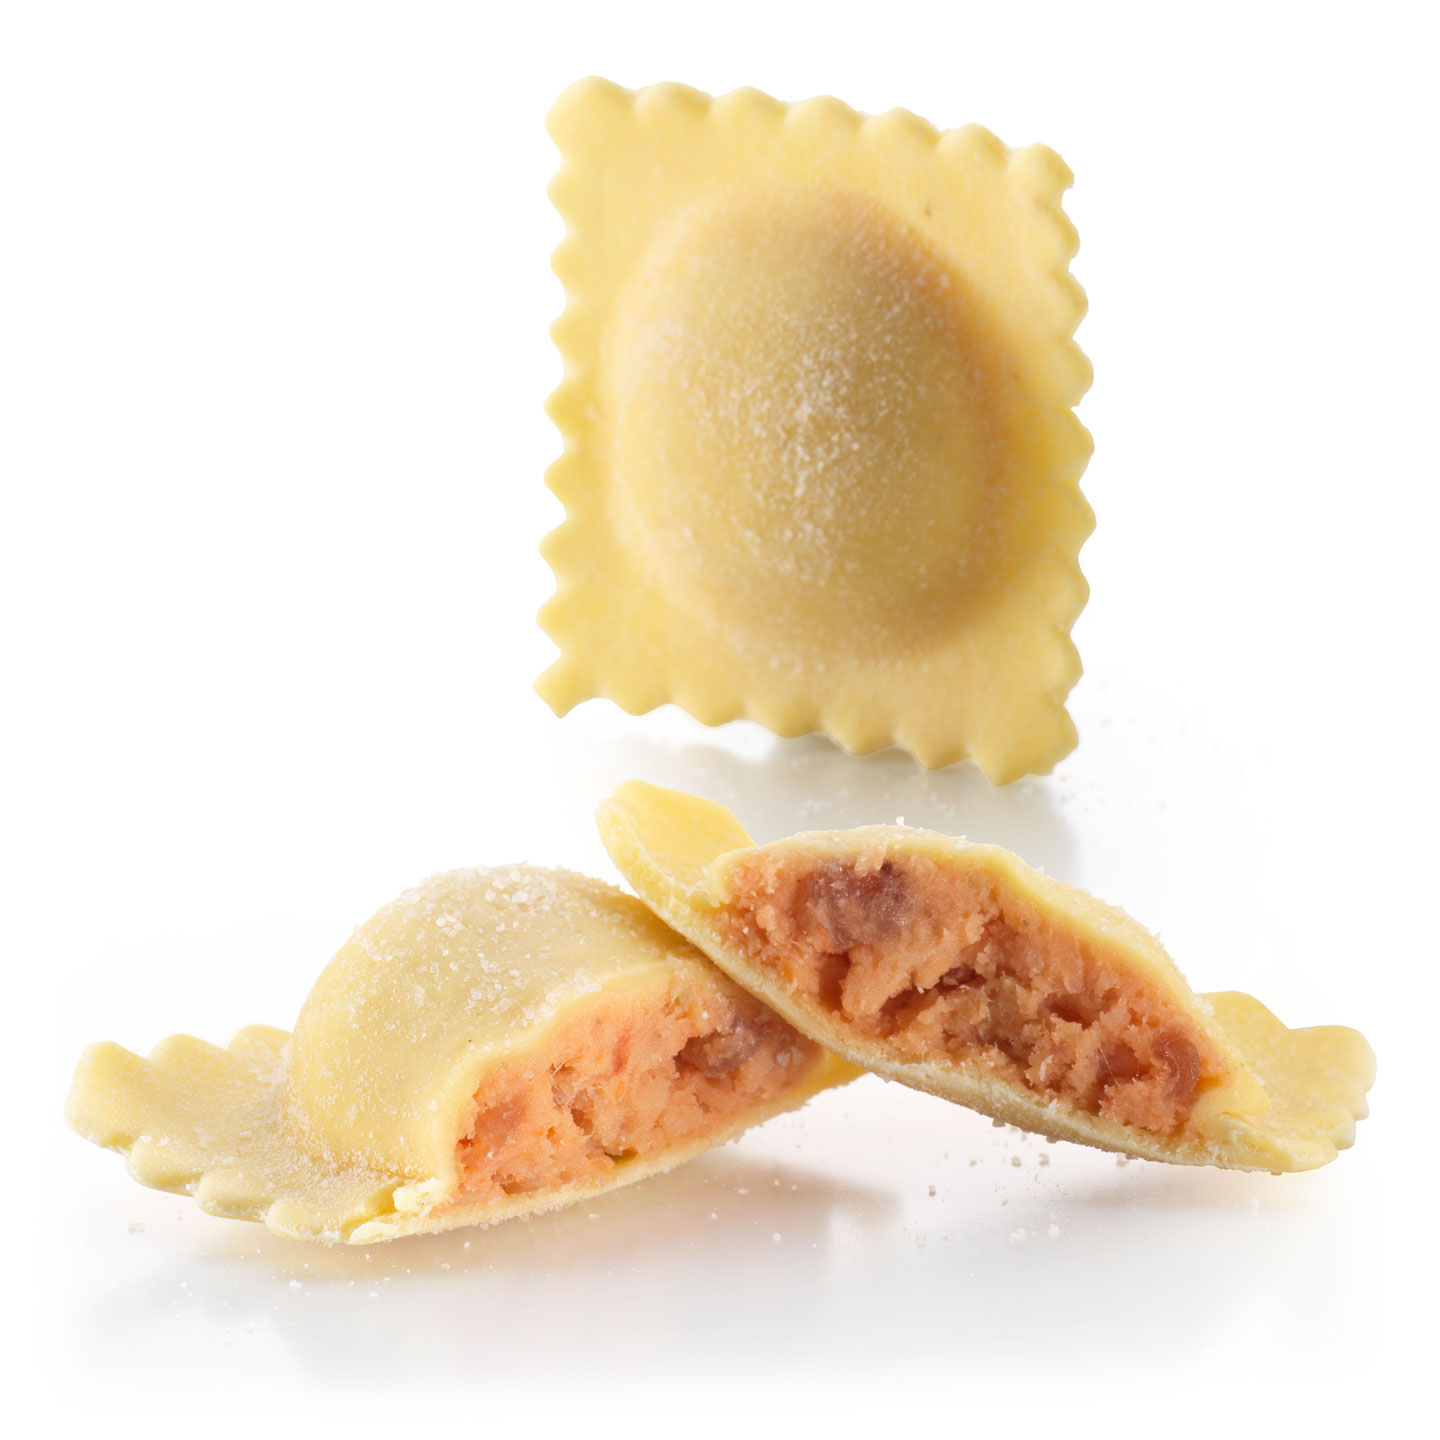 I Ravioli all'Amatriciana raviolificio Poker